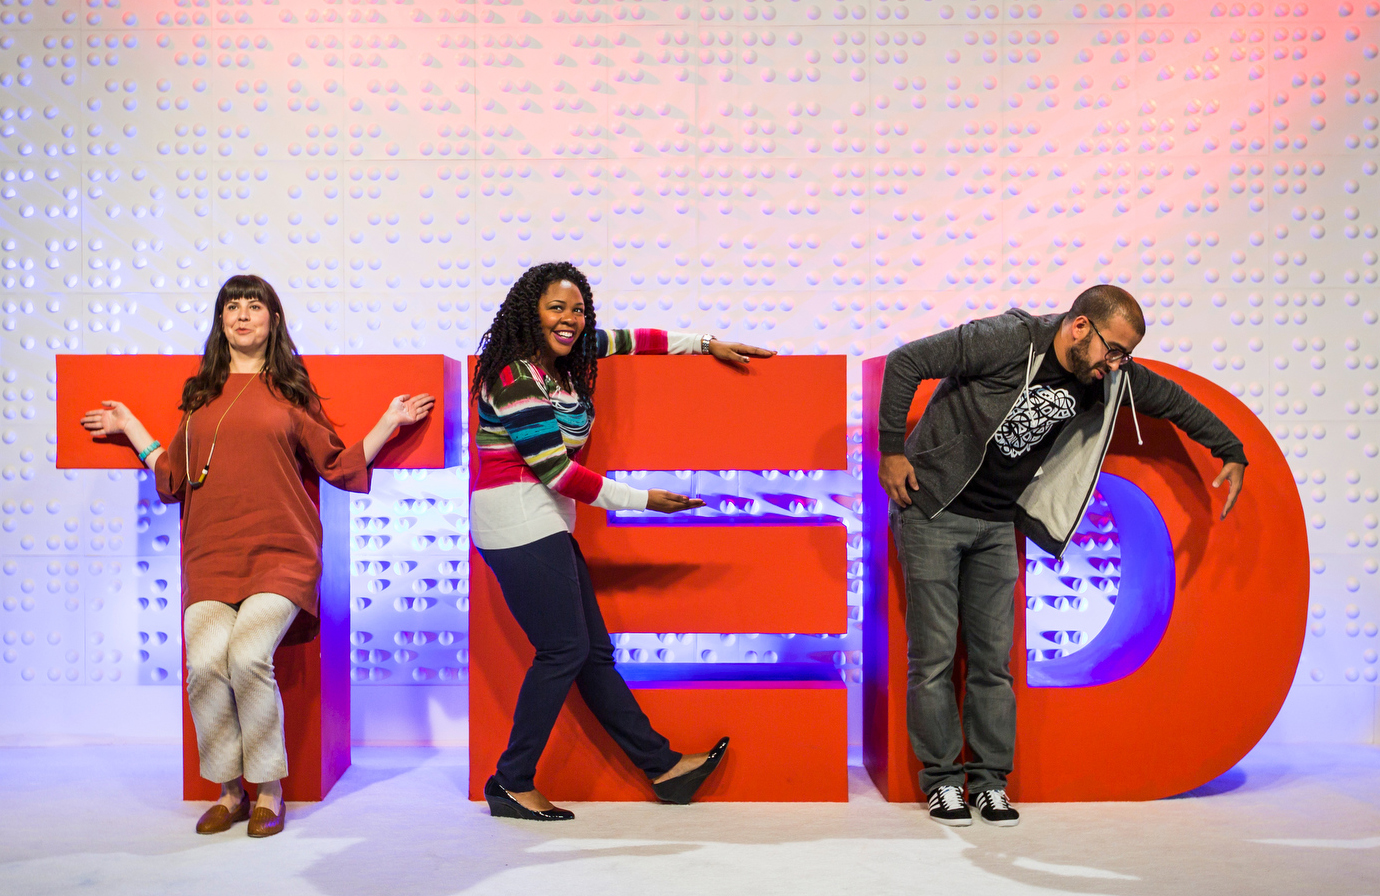 At a booth designed by TED engineer Josh Warchol lets attendees snap a candid with the TED letters. Photo: Ryan Lash/TED